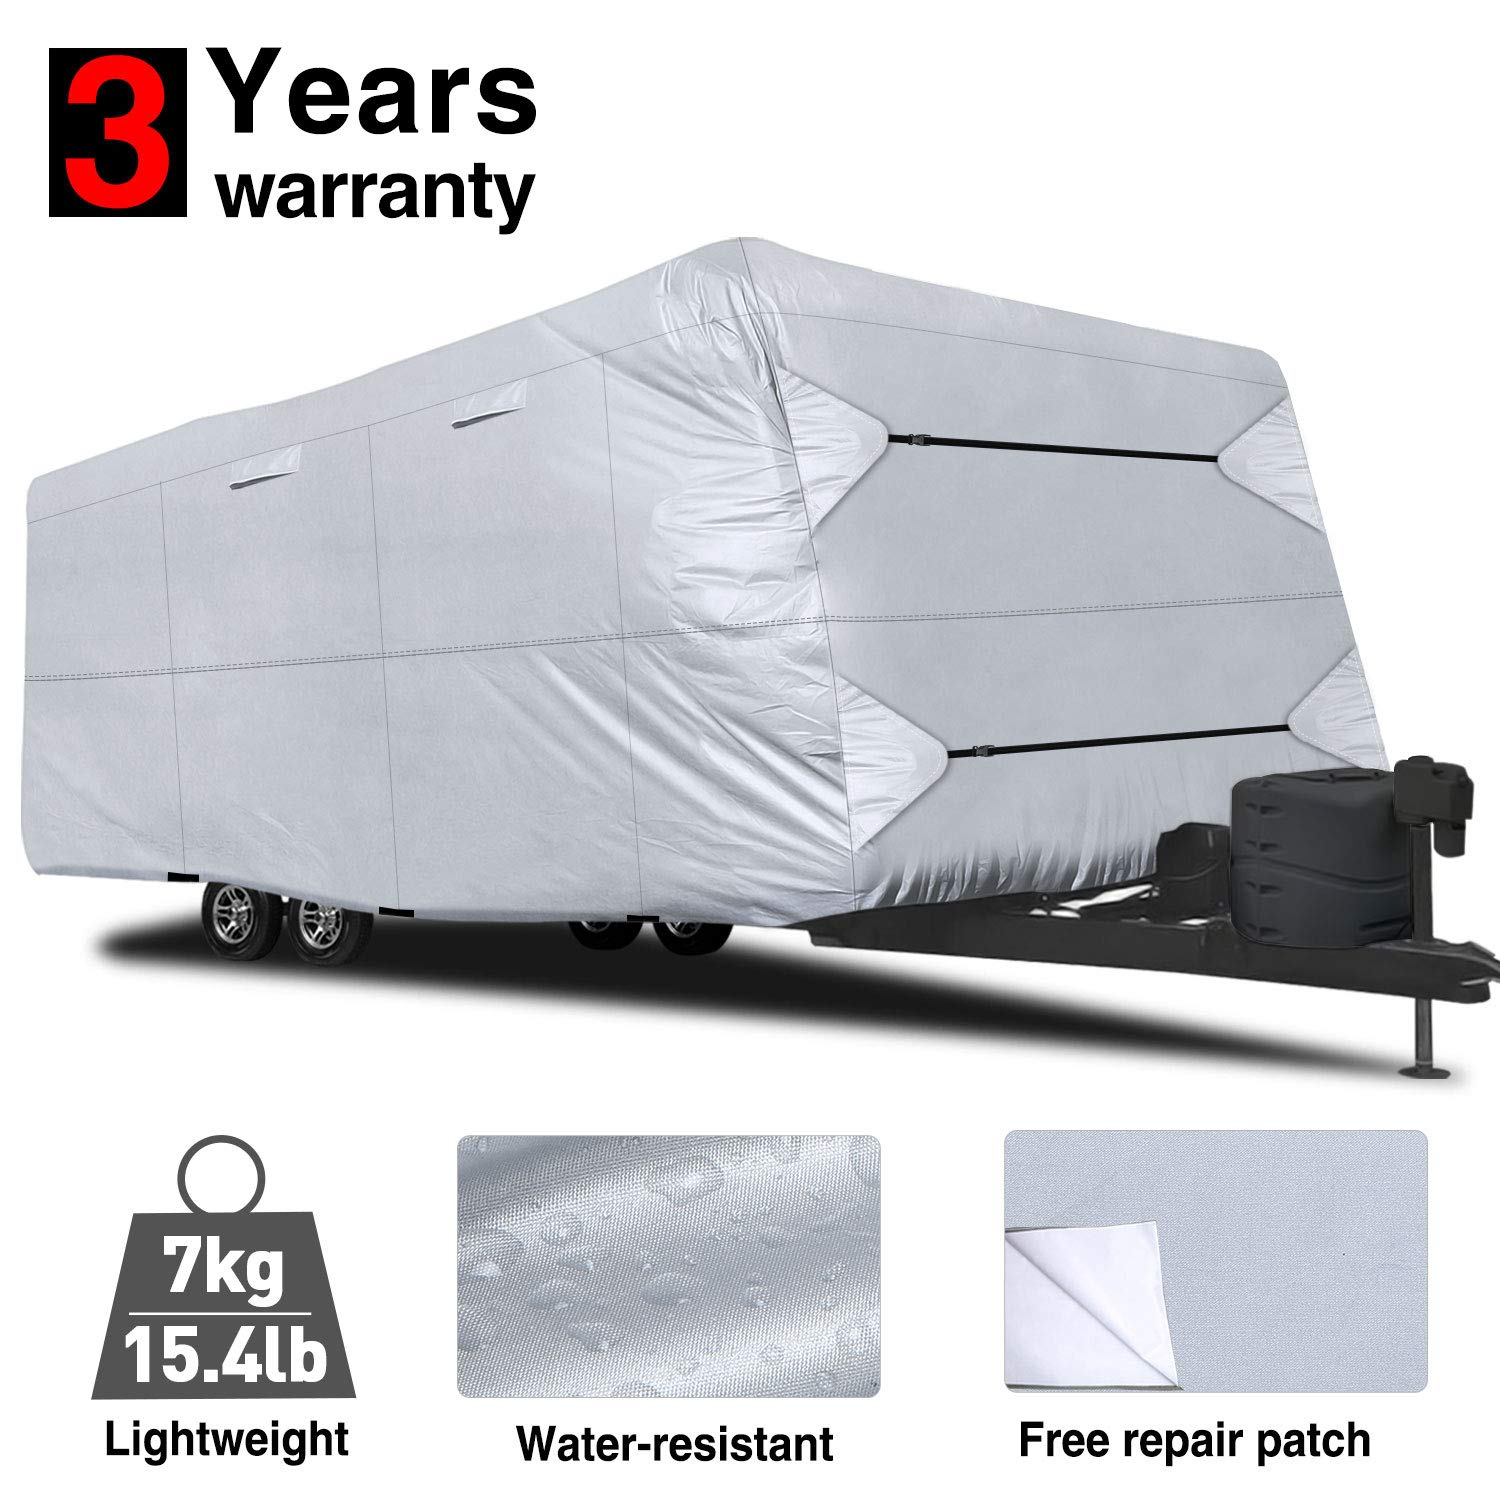 RVMasking Travel Trailer RV Cover 31'7''-34' L with Free Adhesive Repair Patch, Lightweight & Waterproof Camper Cover by RVMasking